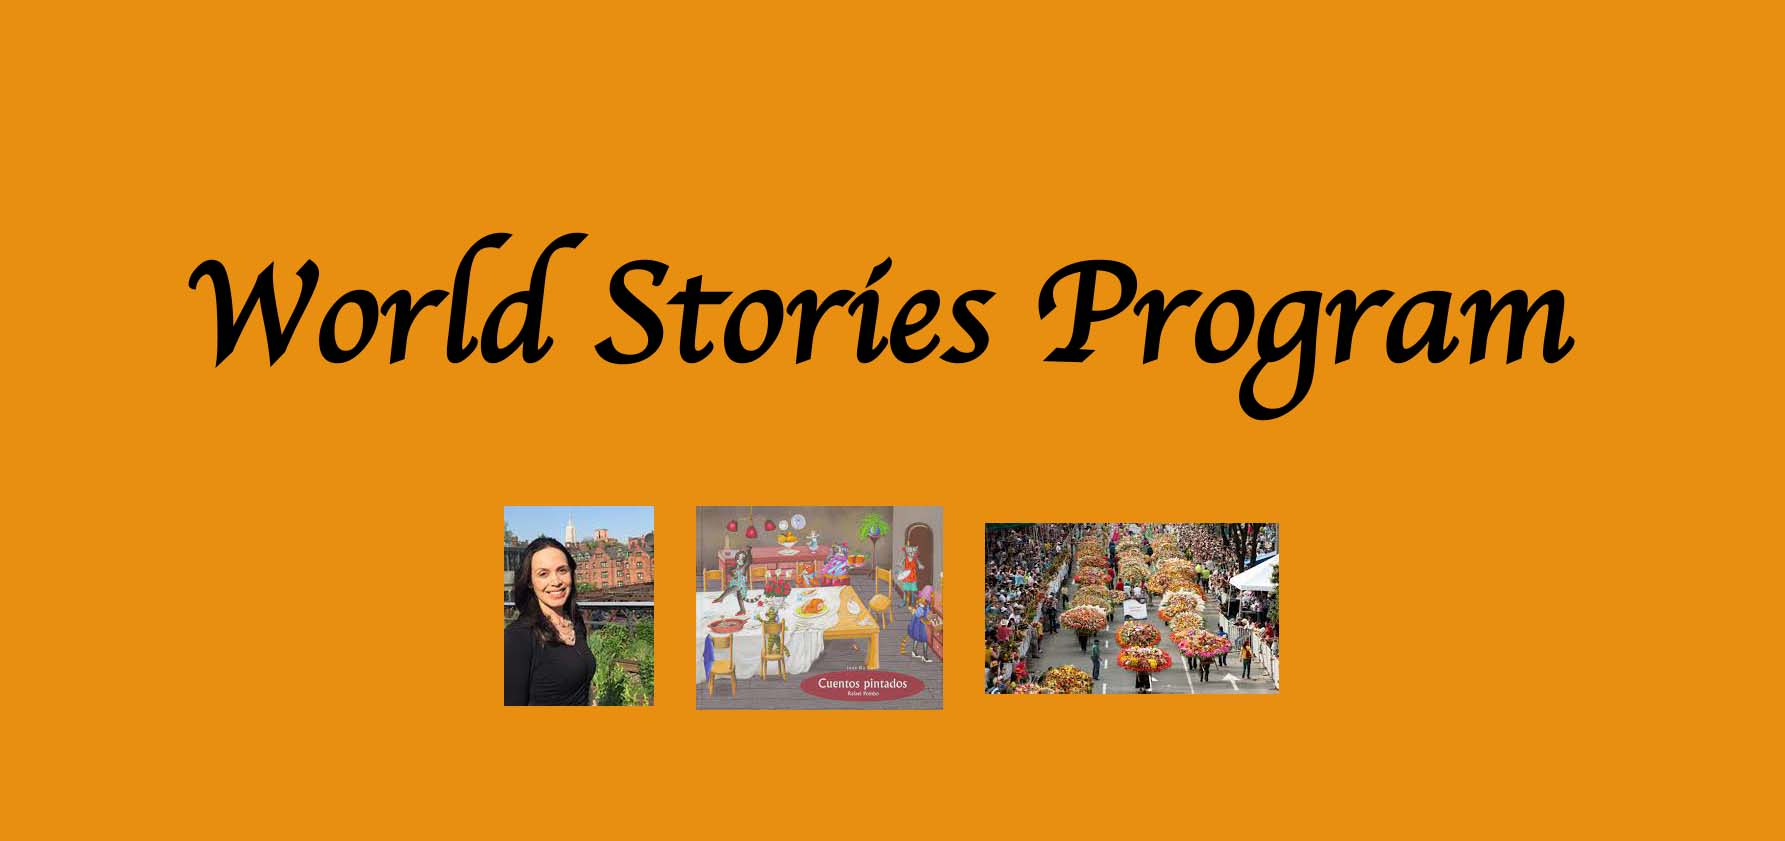 The World Stories Program on October 9, 2021, will feature Spanish Professor Claudia Mesa Higuera reading from the children's book Cuentos Pintados (Painted Tales). Afterward, the children will make paper flowers in honor of the annual Festival of Flowers in Medelin, Colombia.